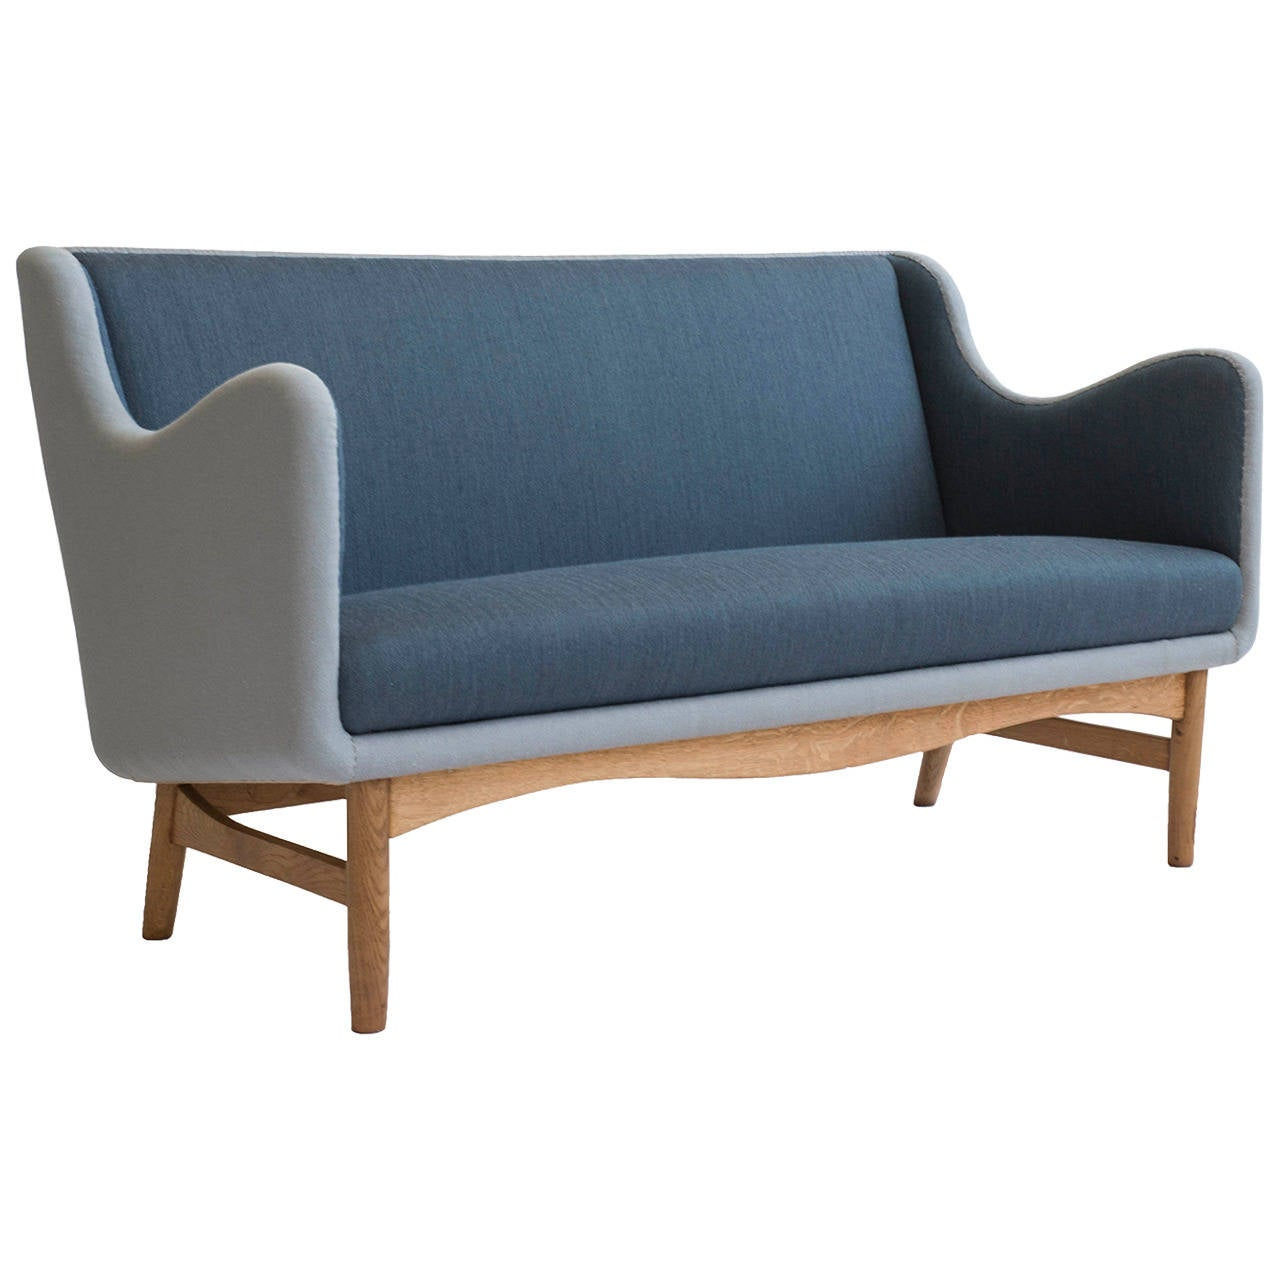 finn juhl sofa baker sofa finn juhl onecollection switzerland danish modern thesofa. Black Bedroom Furniture Sets. Home Design Ideas